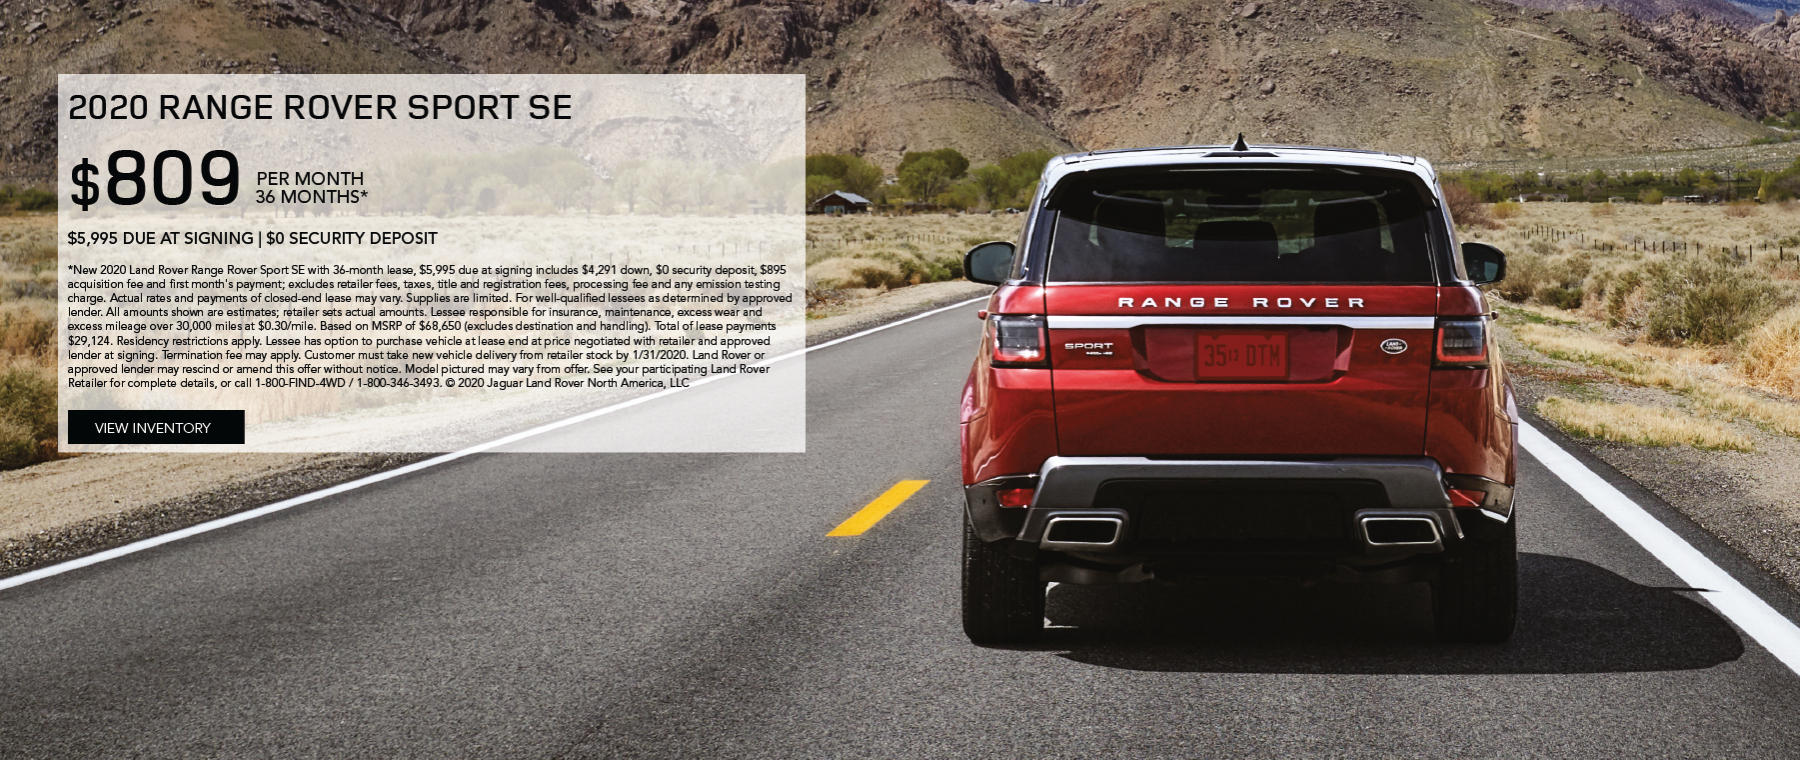 2020 Range Rover Sport SE on highway road with mountains in distance. LEASE FOR $809 PER MONTH FOR 36 MONTHS* $5,995 CASH DUE AT SIGNING. View Inventory.